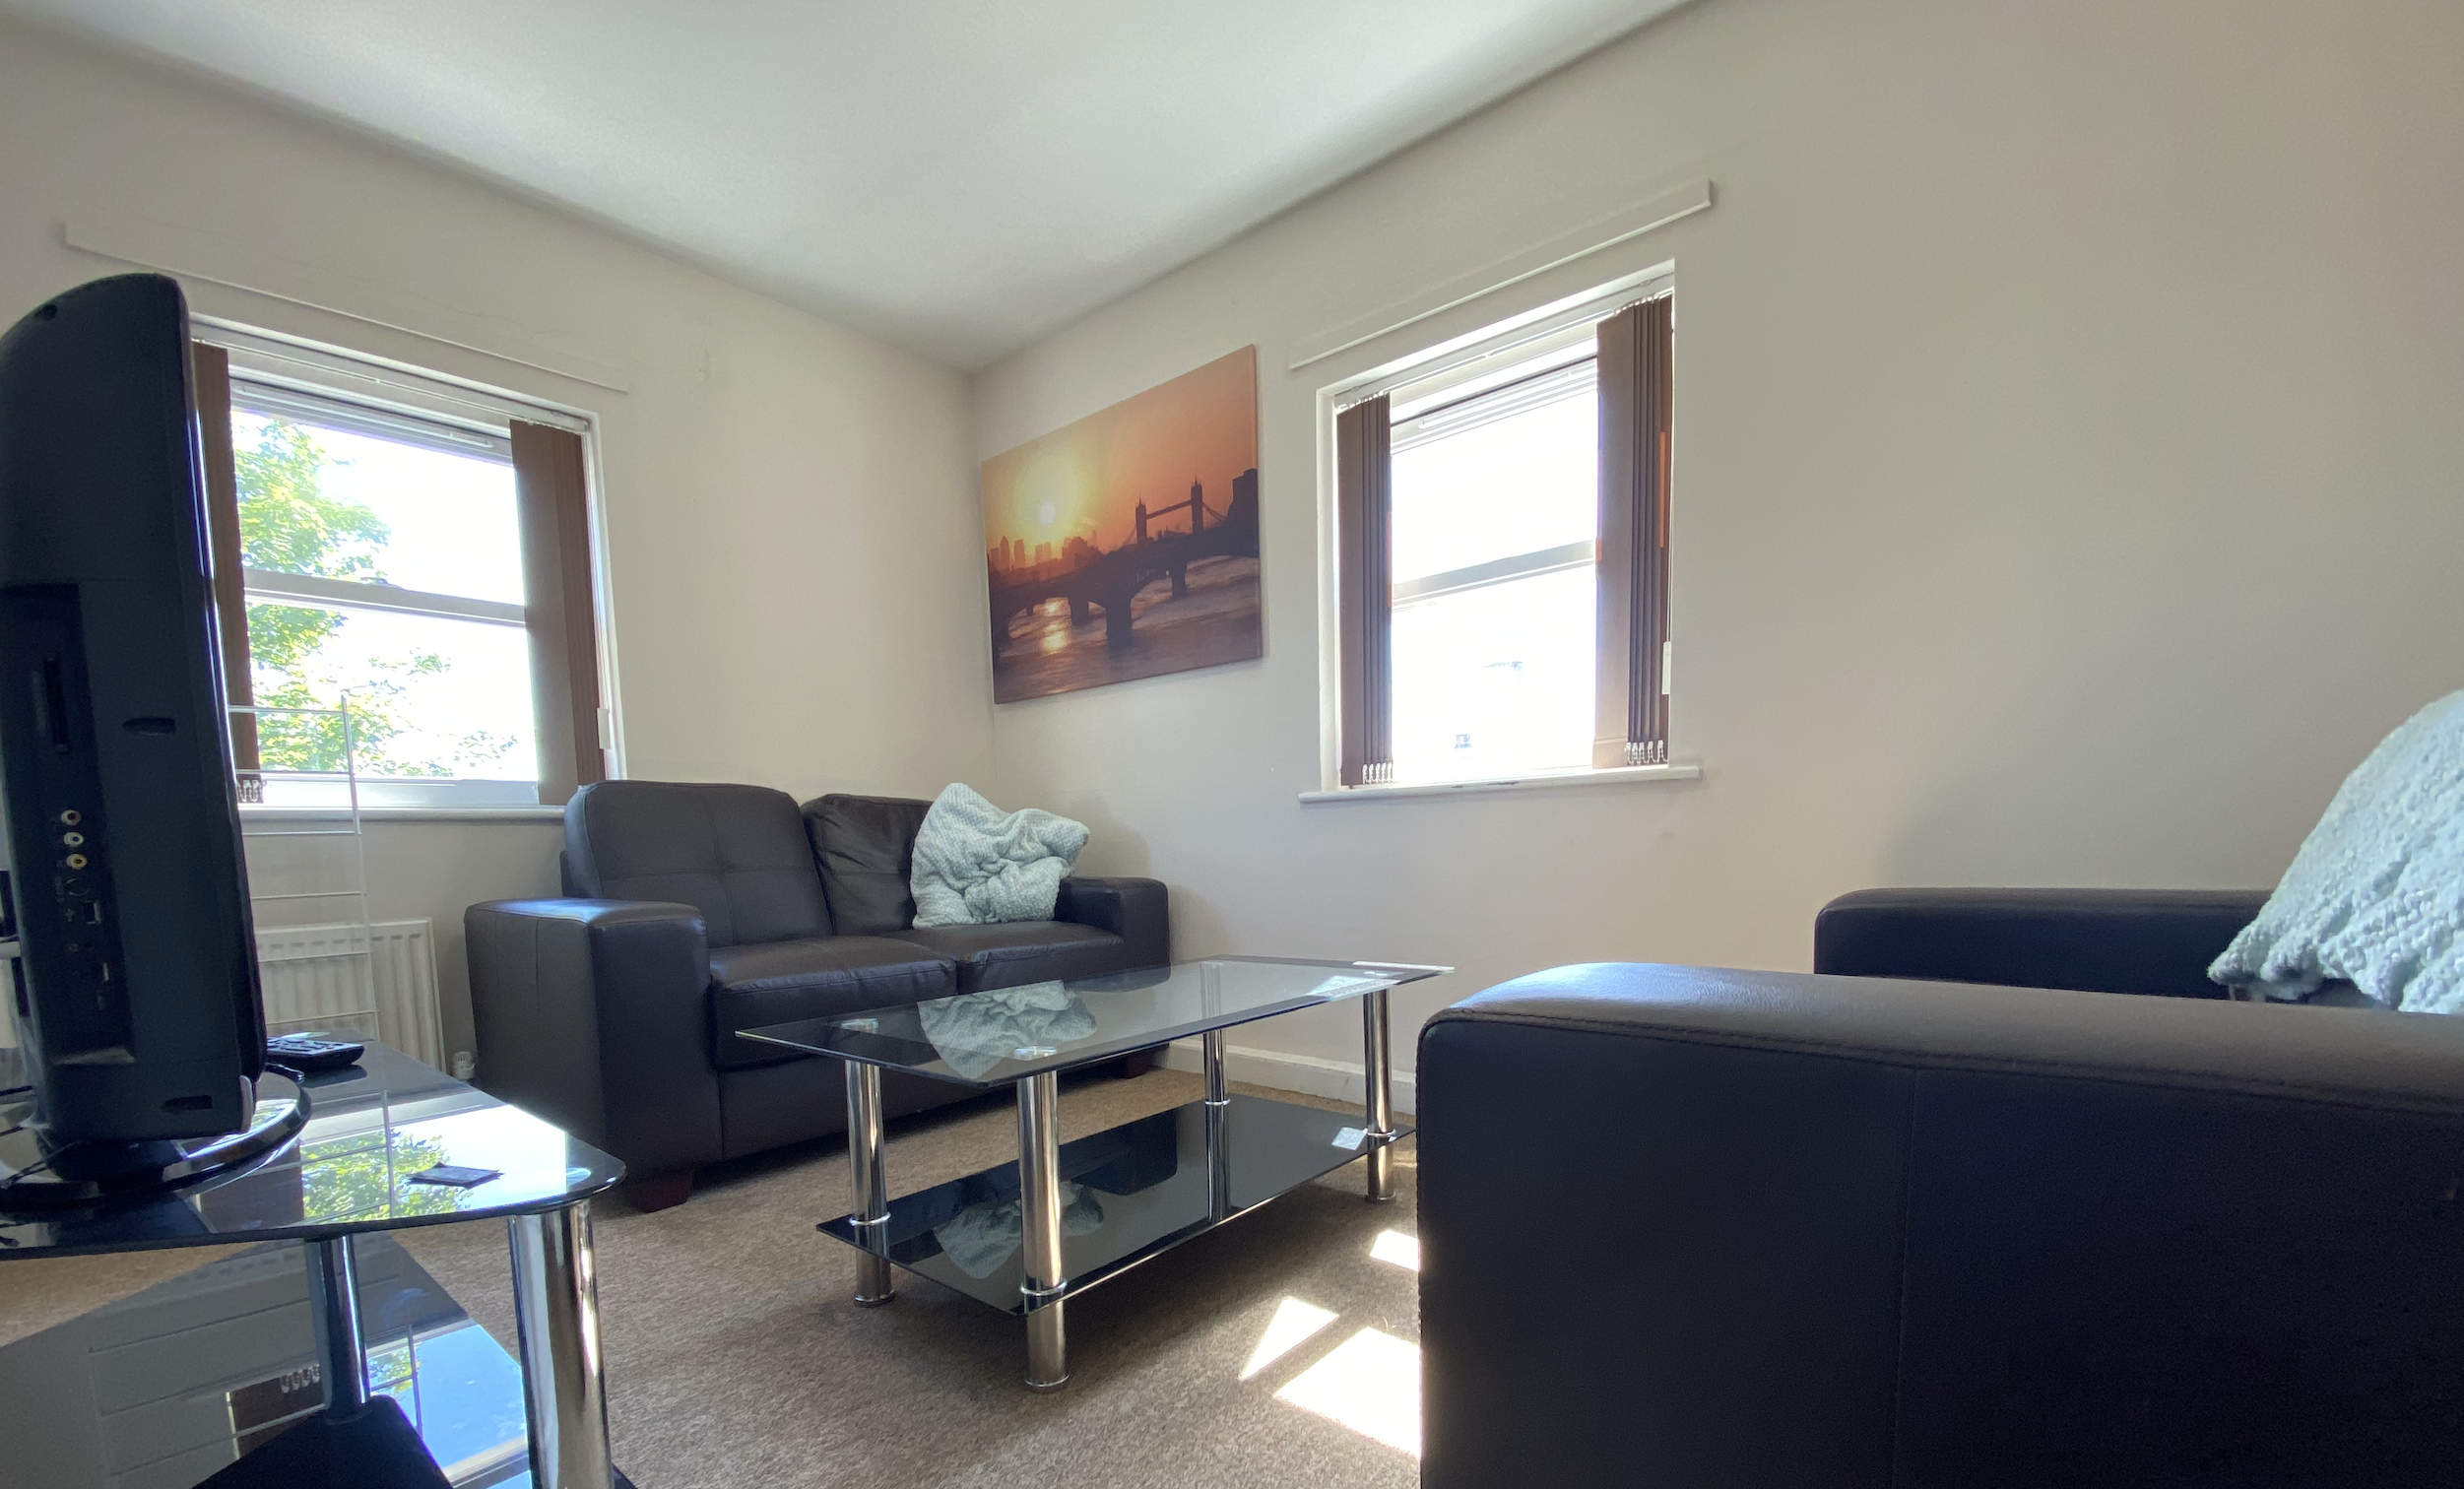 Flat 17, Cathedral Court – 3 Bed